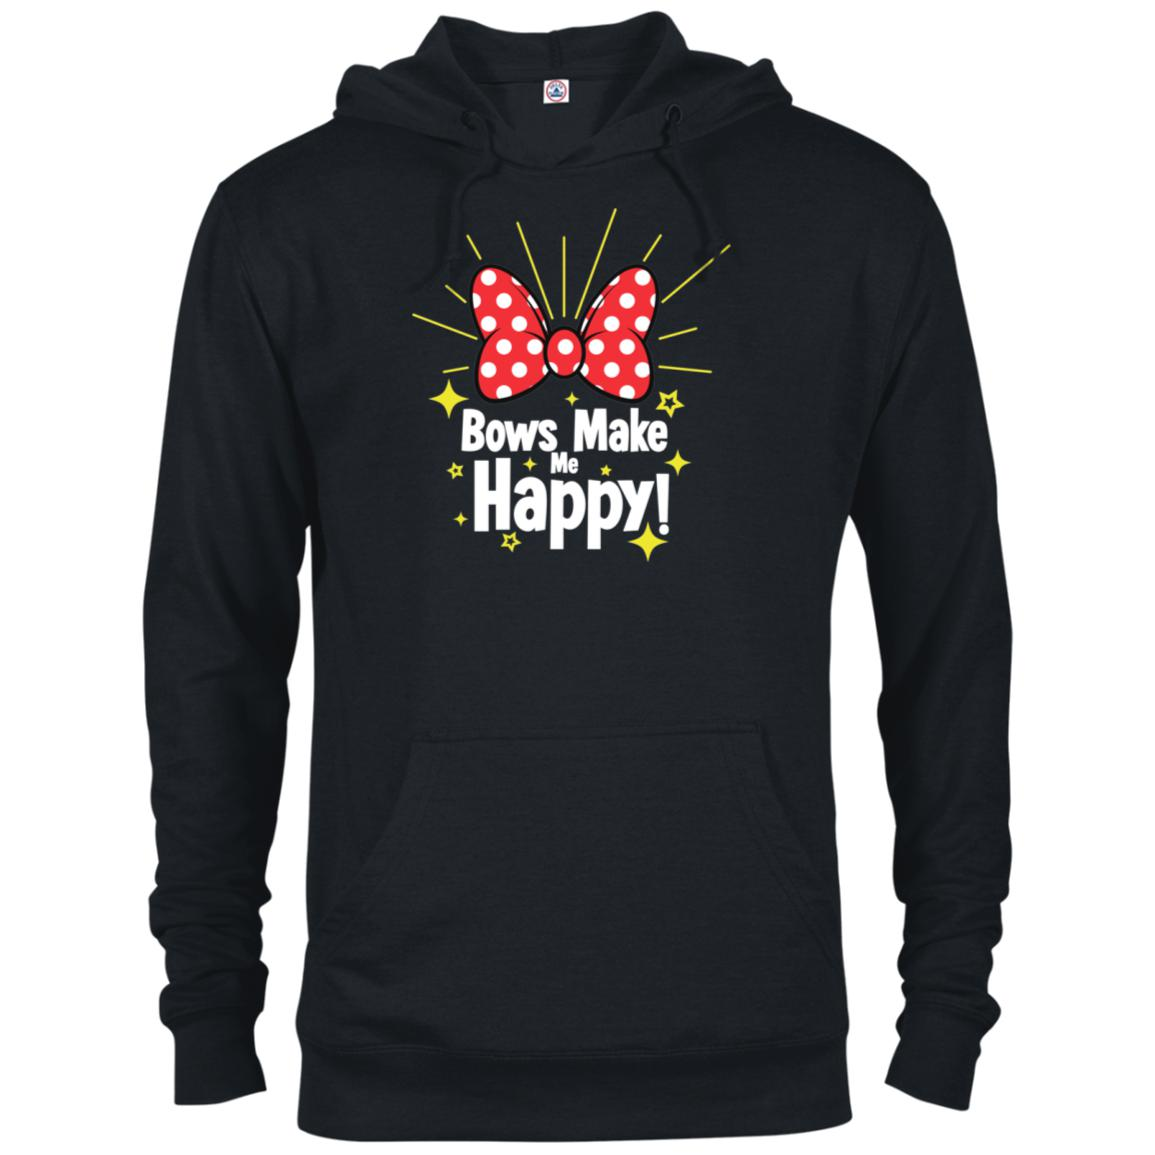 Bows Make Me Happy - Delta French Terry Hoodie